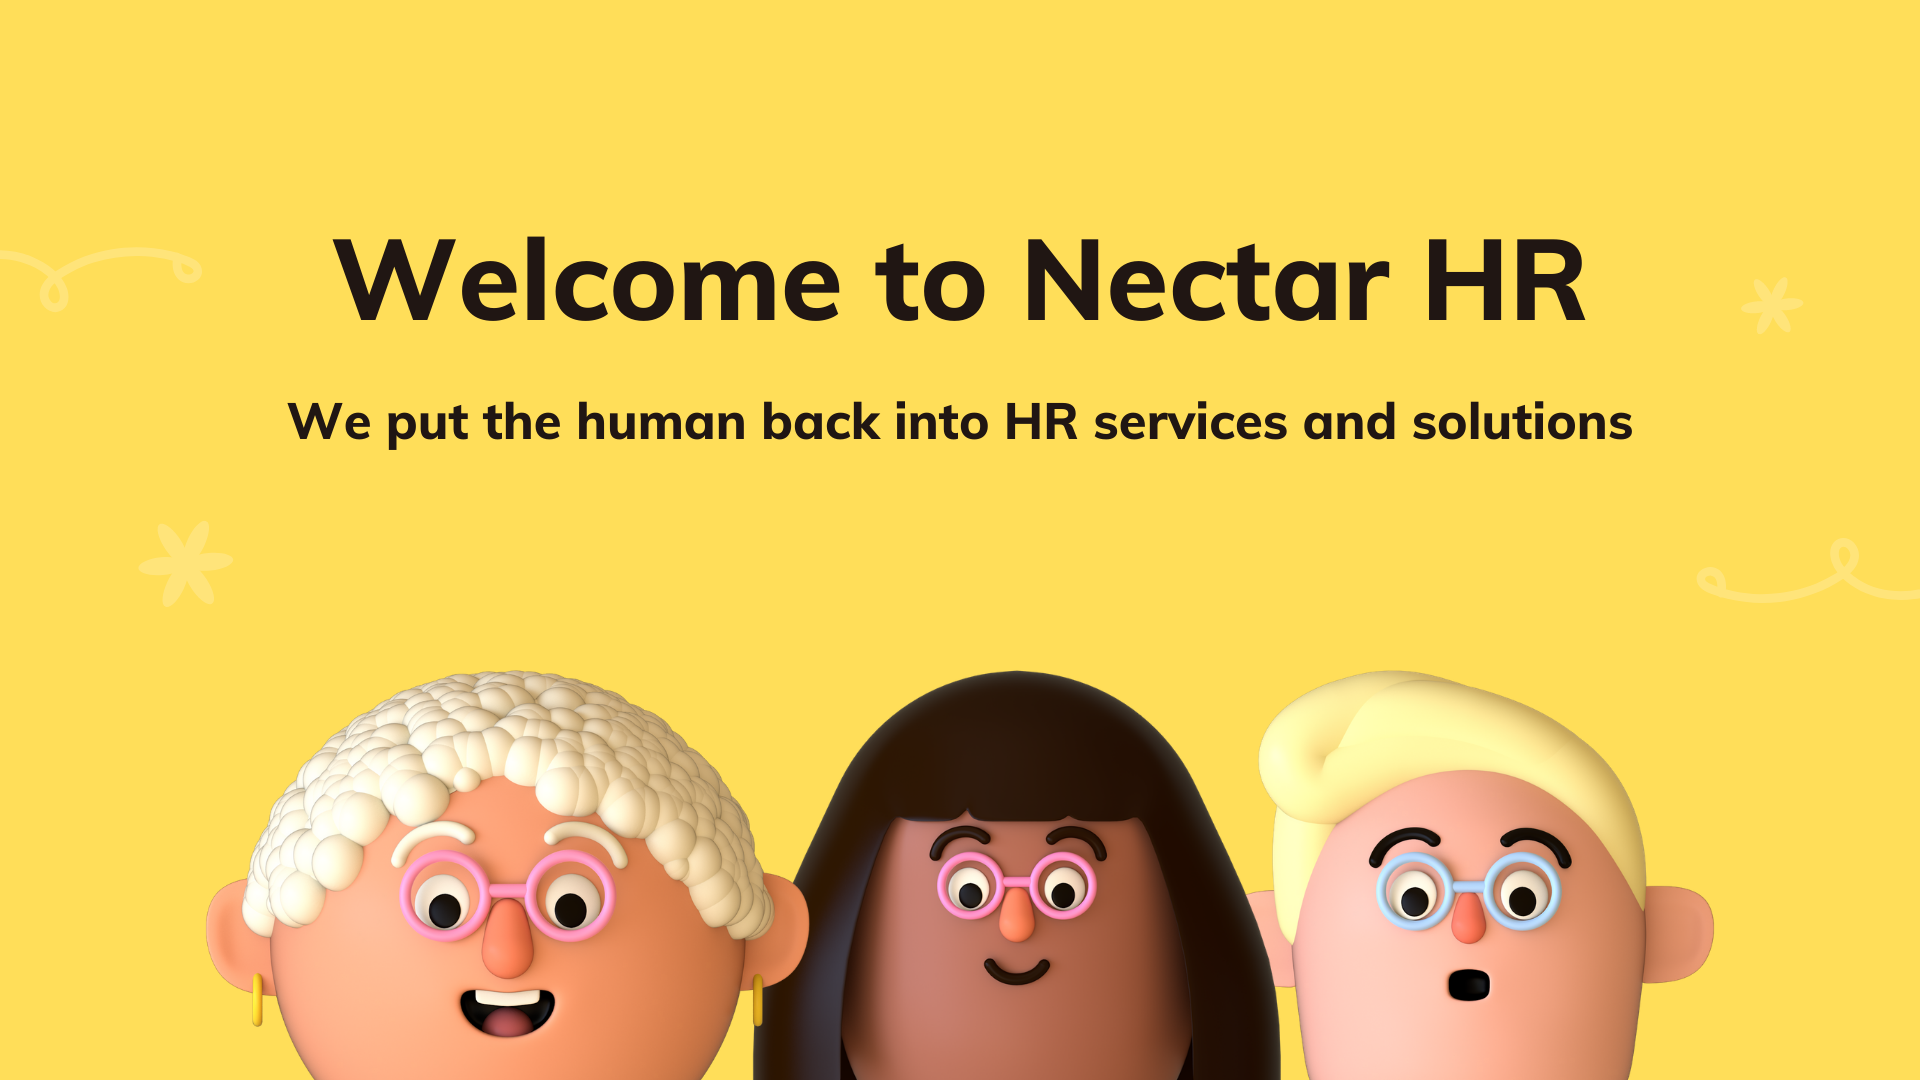 Welcome to Nectar HR